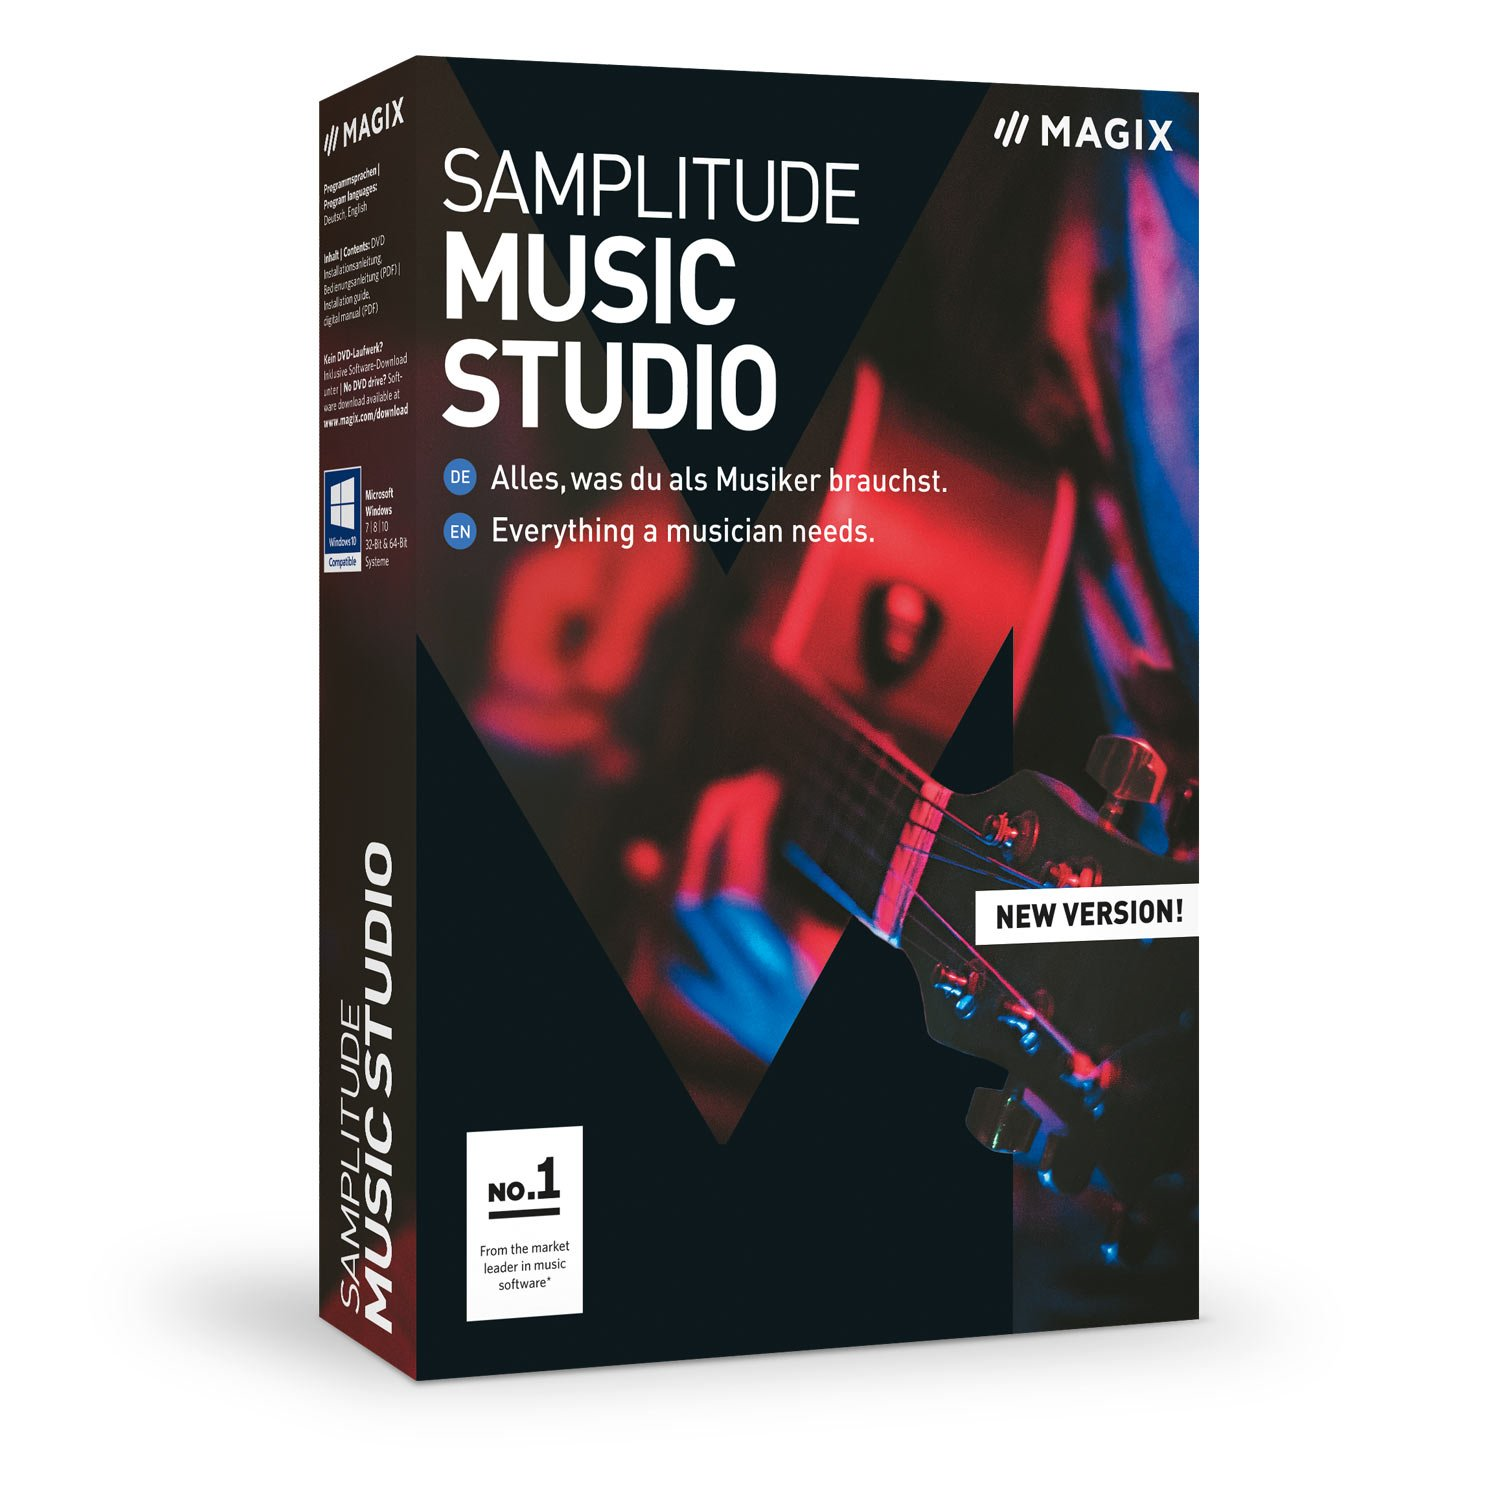 MAGIX Samplitude Music Studio - Version 2019 - the Complete Software Studio For Composing, Recording, Mixing and Mastering by MAGIX